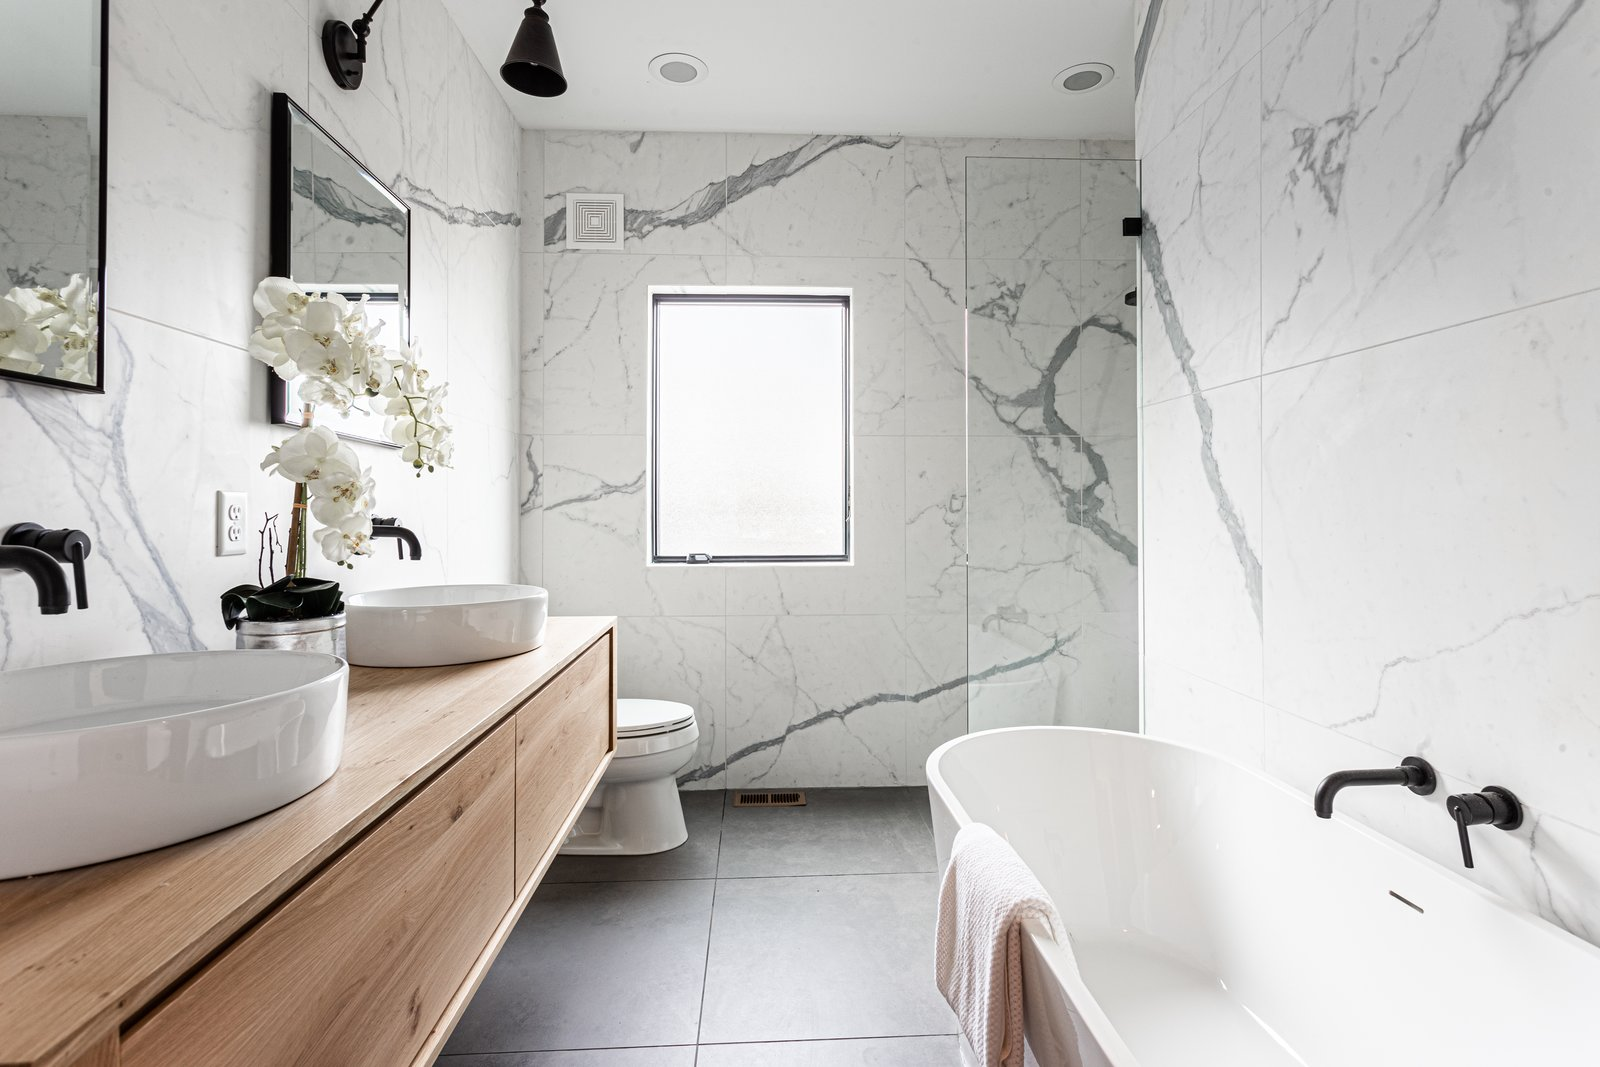 Bath, One Piece, Open, Stone Tile, Wall, Freestanding, Vessel, Wood, and Recessed  Bath Wood Freestanding Stone Tile Photos from Bathrooms